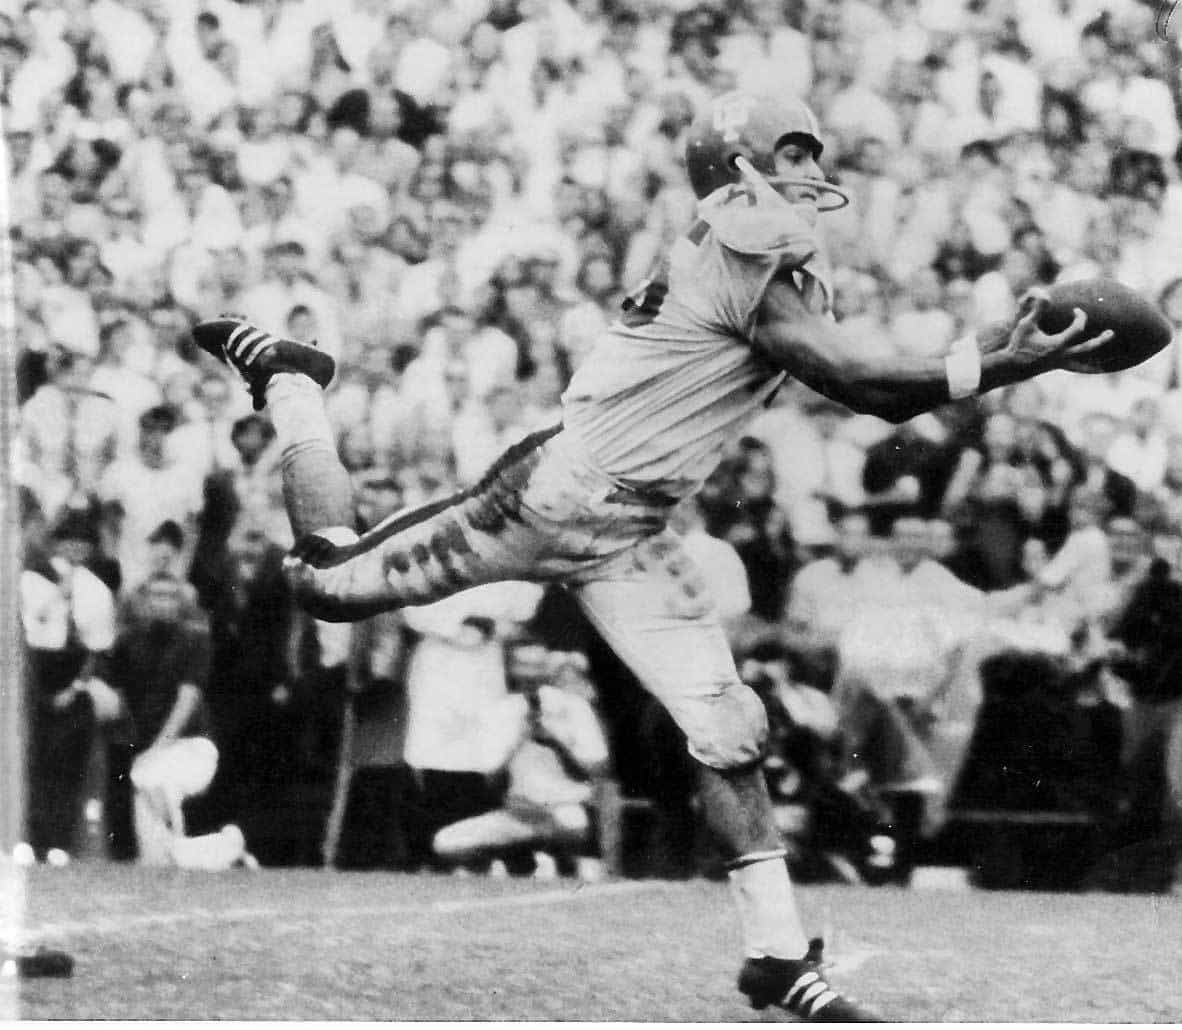 Carlos Alvarez stretches to catch a touchdown pass against Miami at the Orange Bowl in 1969.